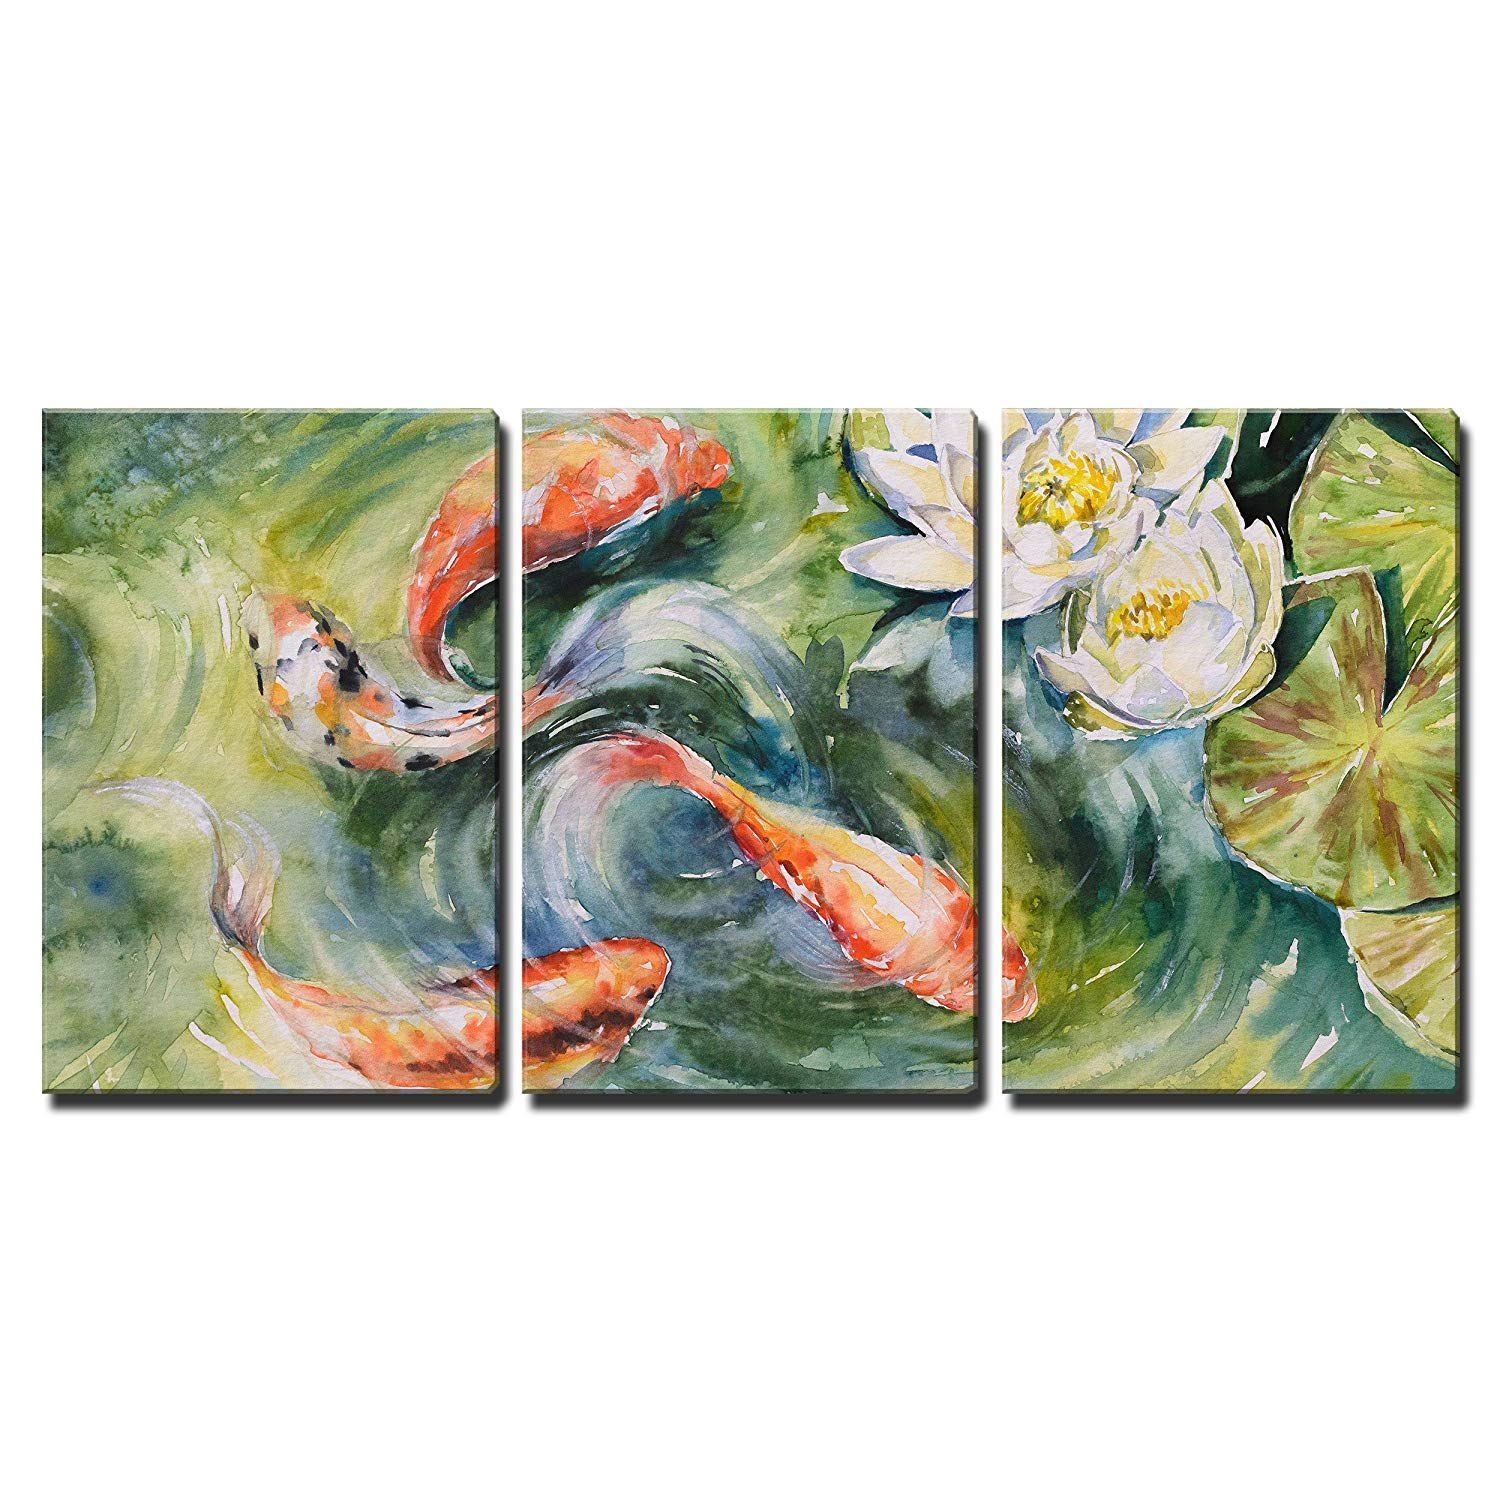 """wall26 3 Piece Canvas Wall Art - Colorful Watercolor of Koi Fishes Swimming in Pond - Home Decor Ready to Hang - 24""""x36"""" in"""